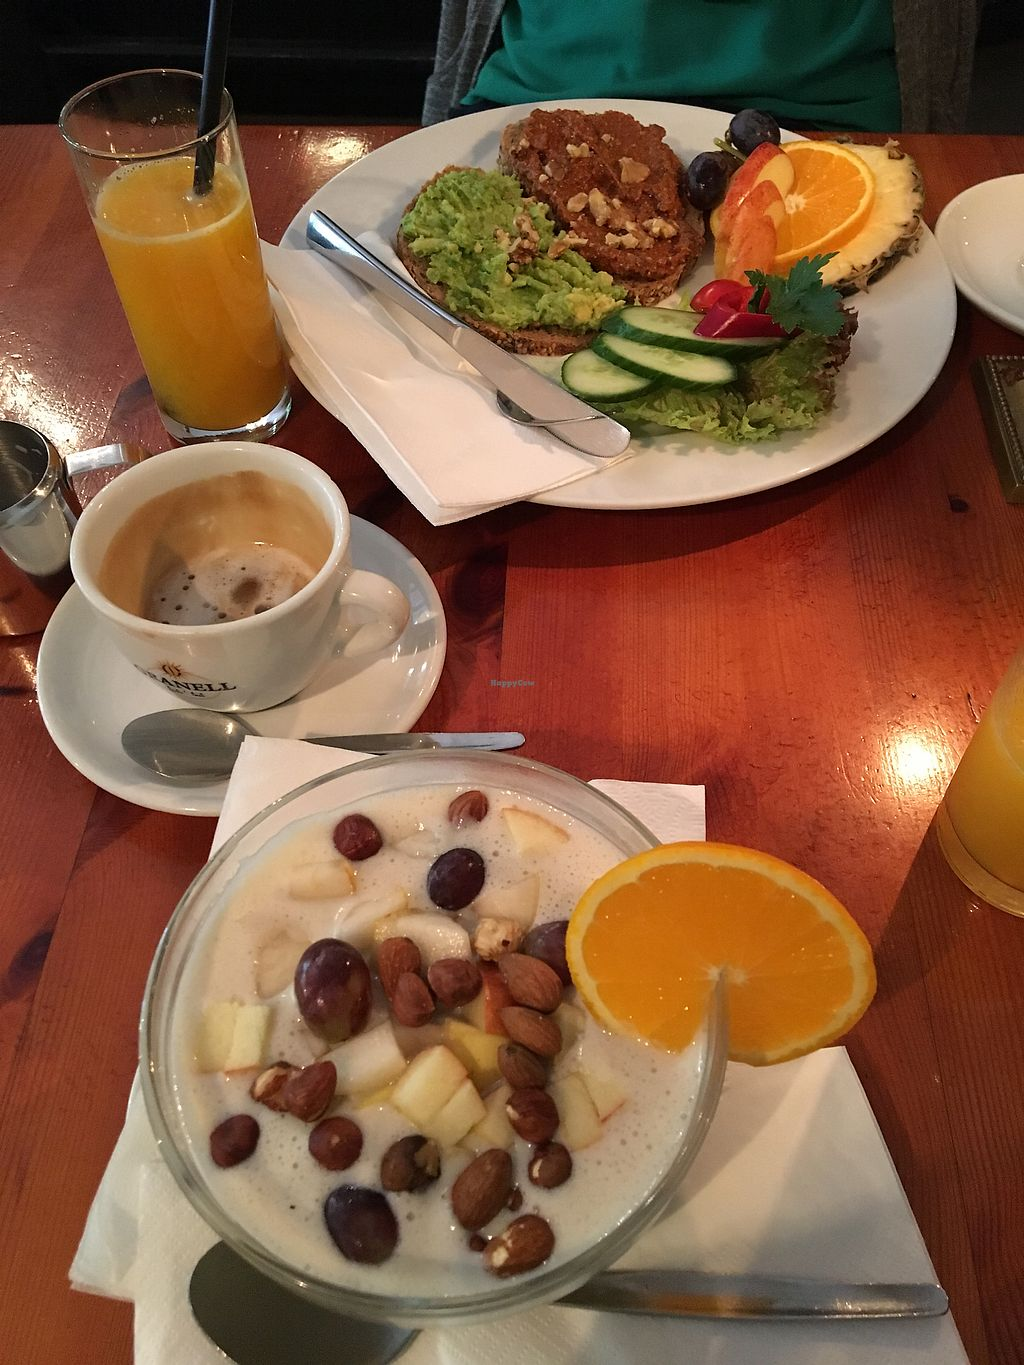 """Photo of Cafe V  by <a href=""""/members/profile/AnnikaPoij%C3%A4rvi"""">AnnikaPoijärvi</a> <br/>Porridge and sandwitch <br/> October 2, 2017  - <a href='/contact/abuse/image/7568/310999'>Report</a>"""